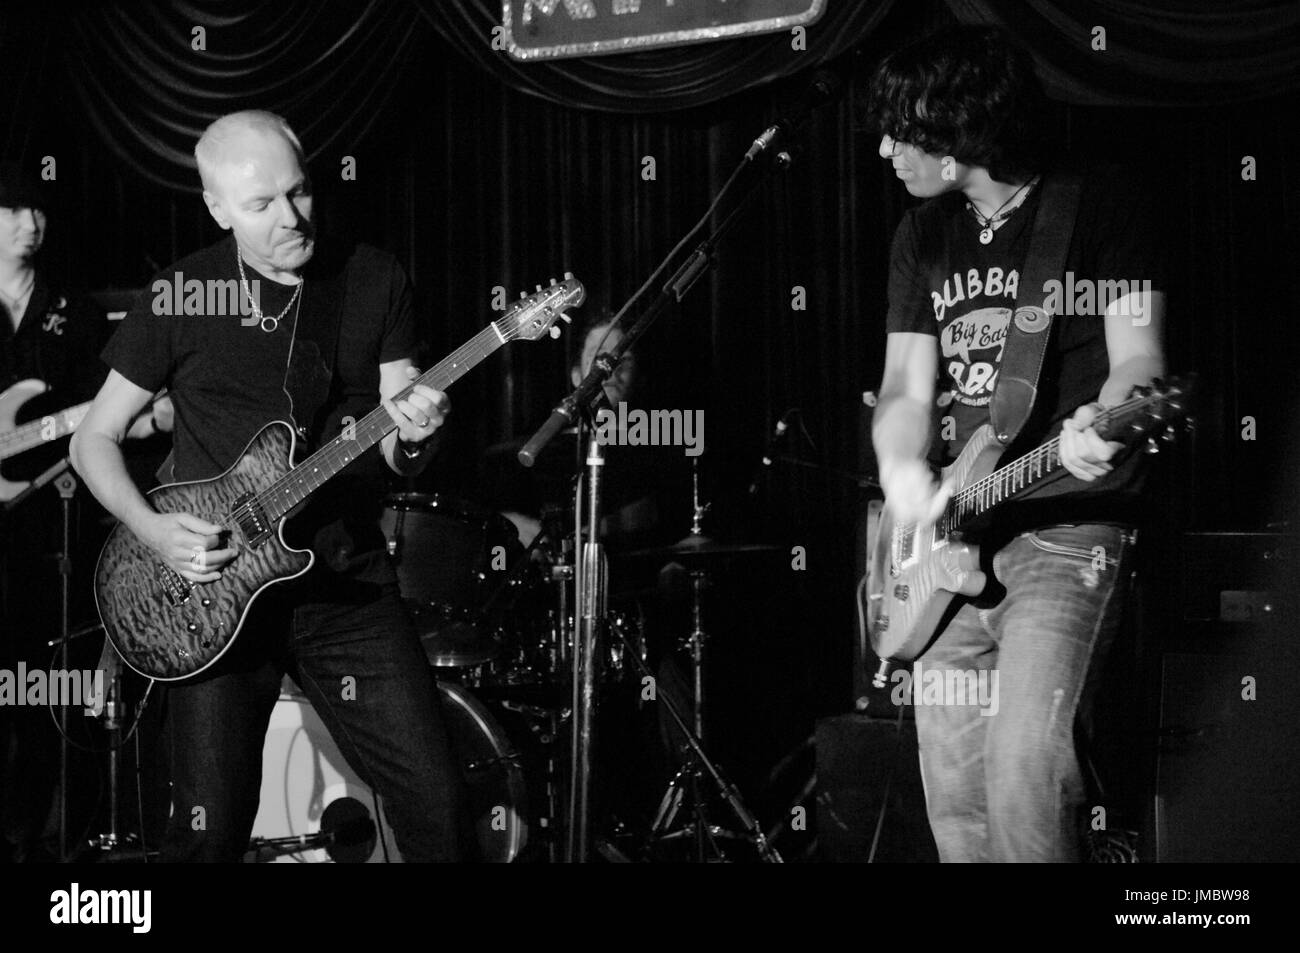 (L-R) Musician Peter Frampton Davy Knowles perform Mint September 28,2009 Los Angeles. - Stock Image